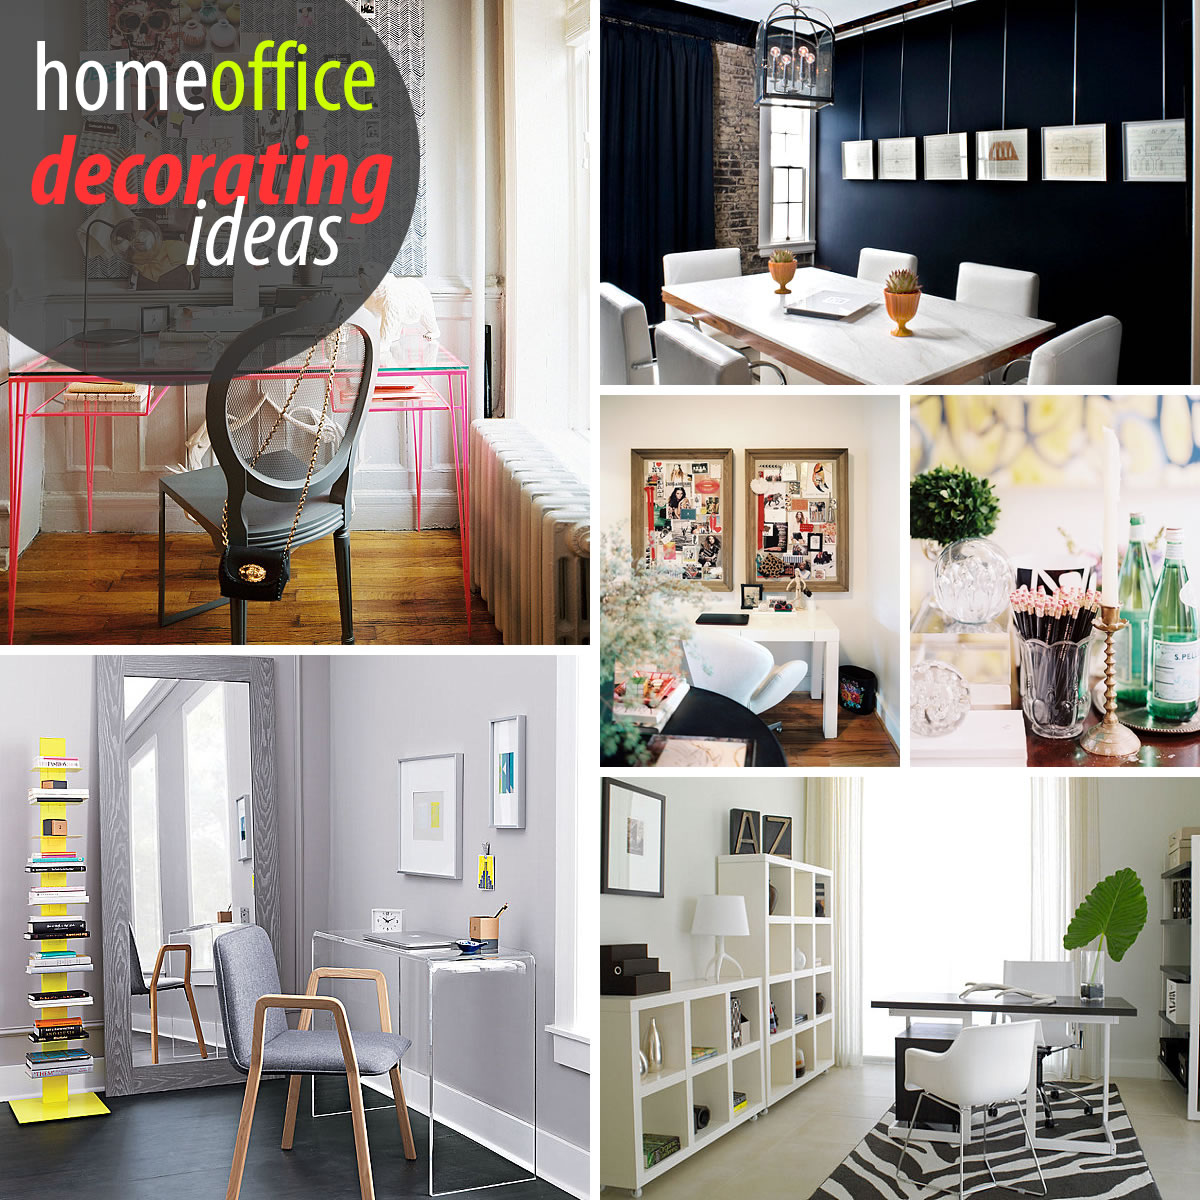 Creative Home Office Ideas New Creative Home Office Decorating Ideas Design Inspiration